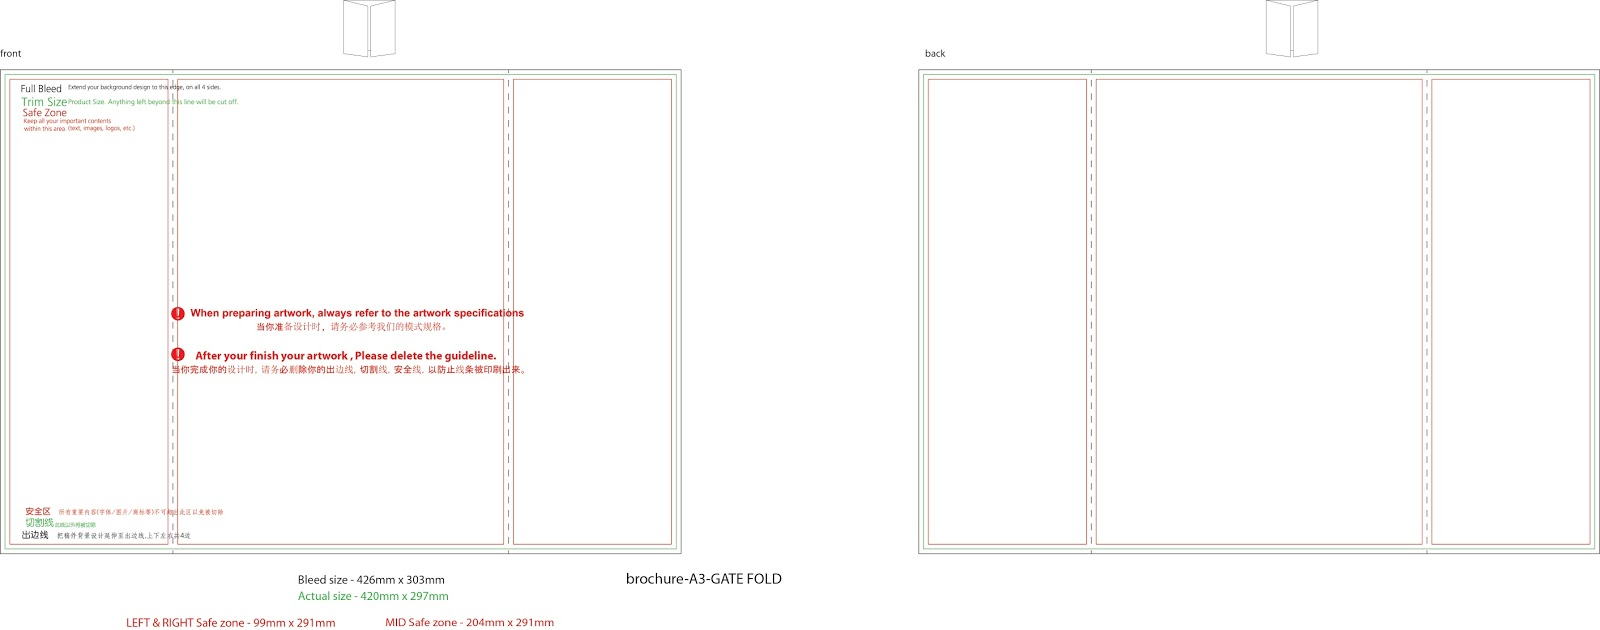 Double gate fold brochure template free download d for Double gate fold brochure template